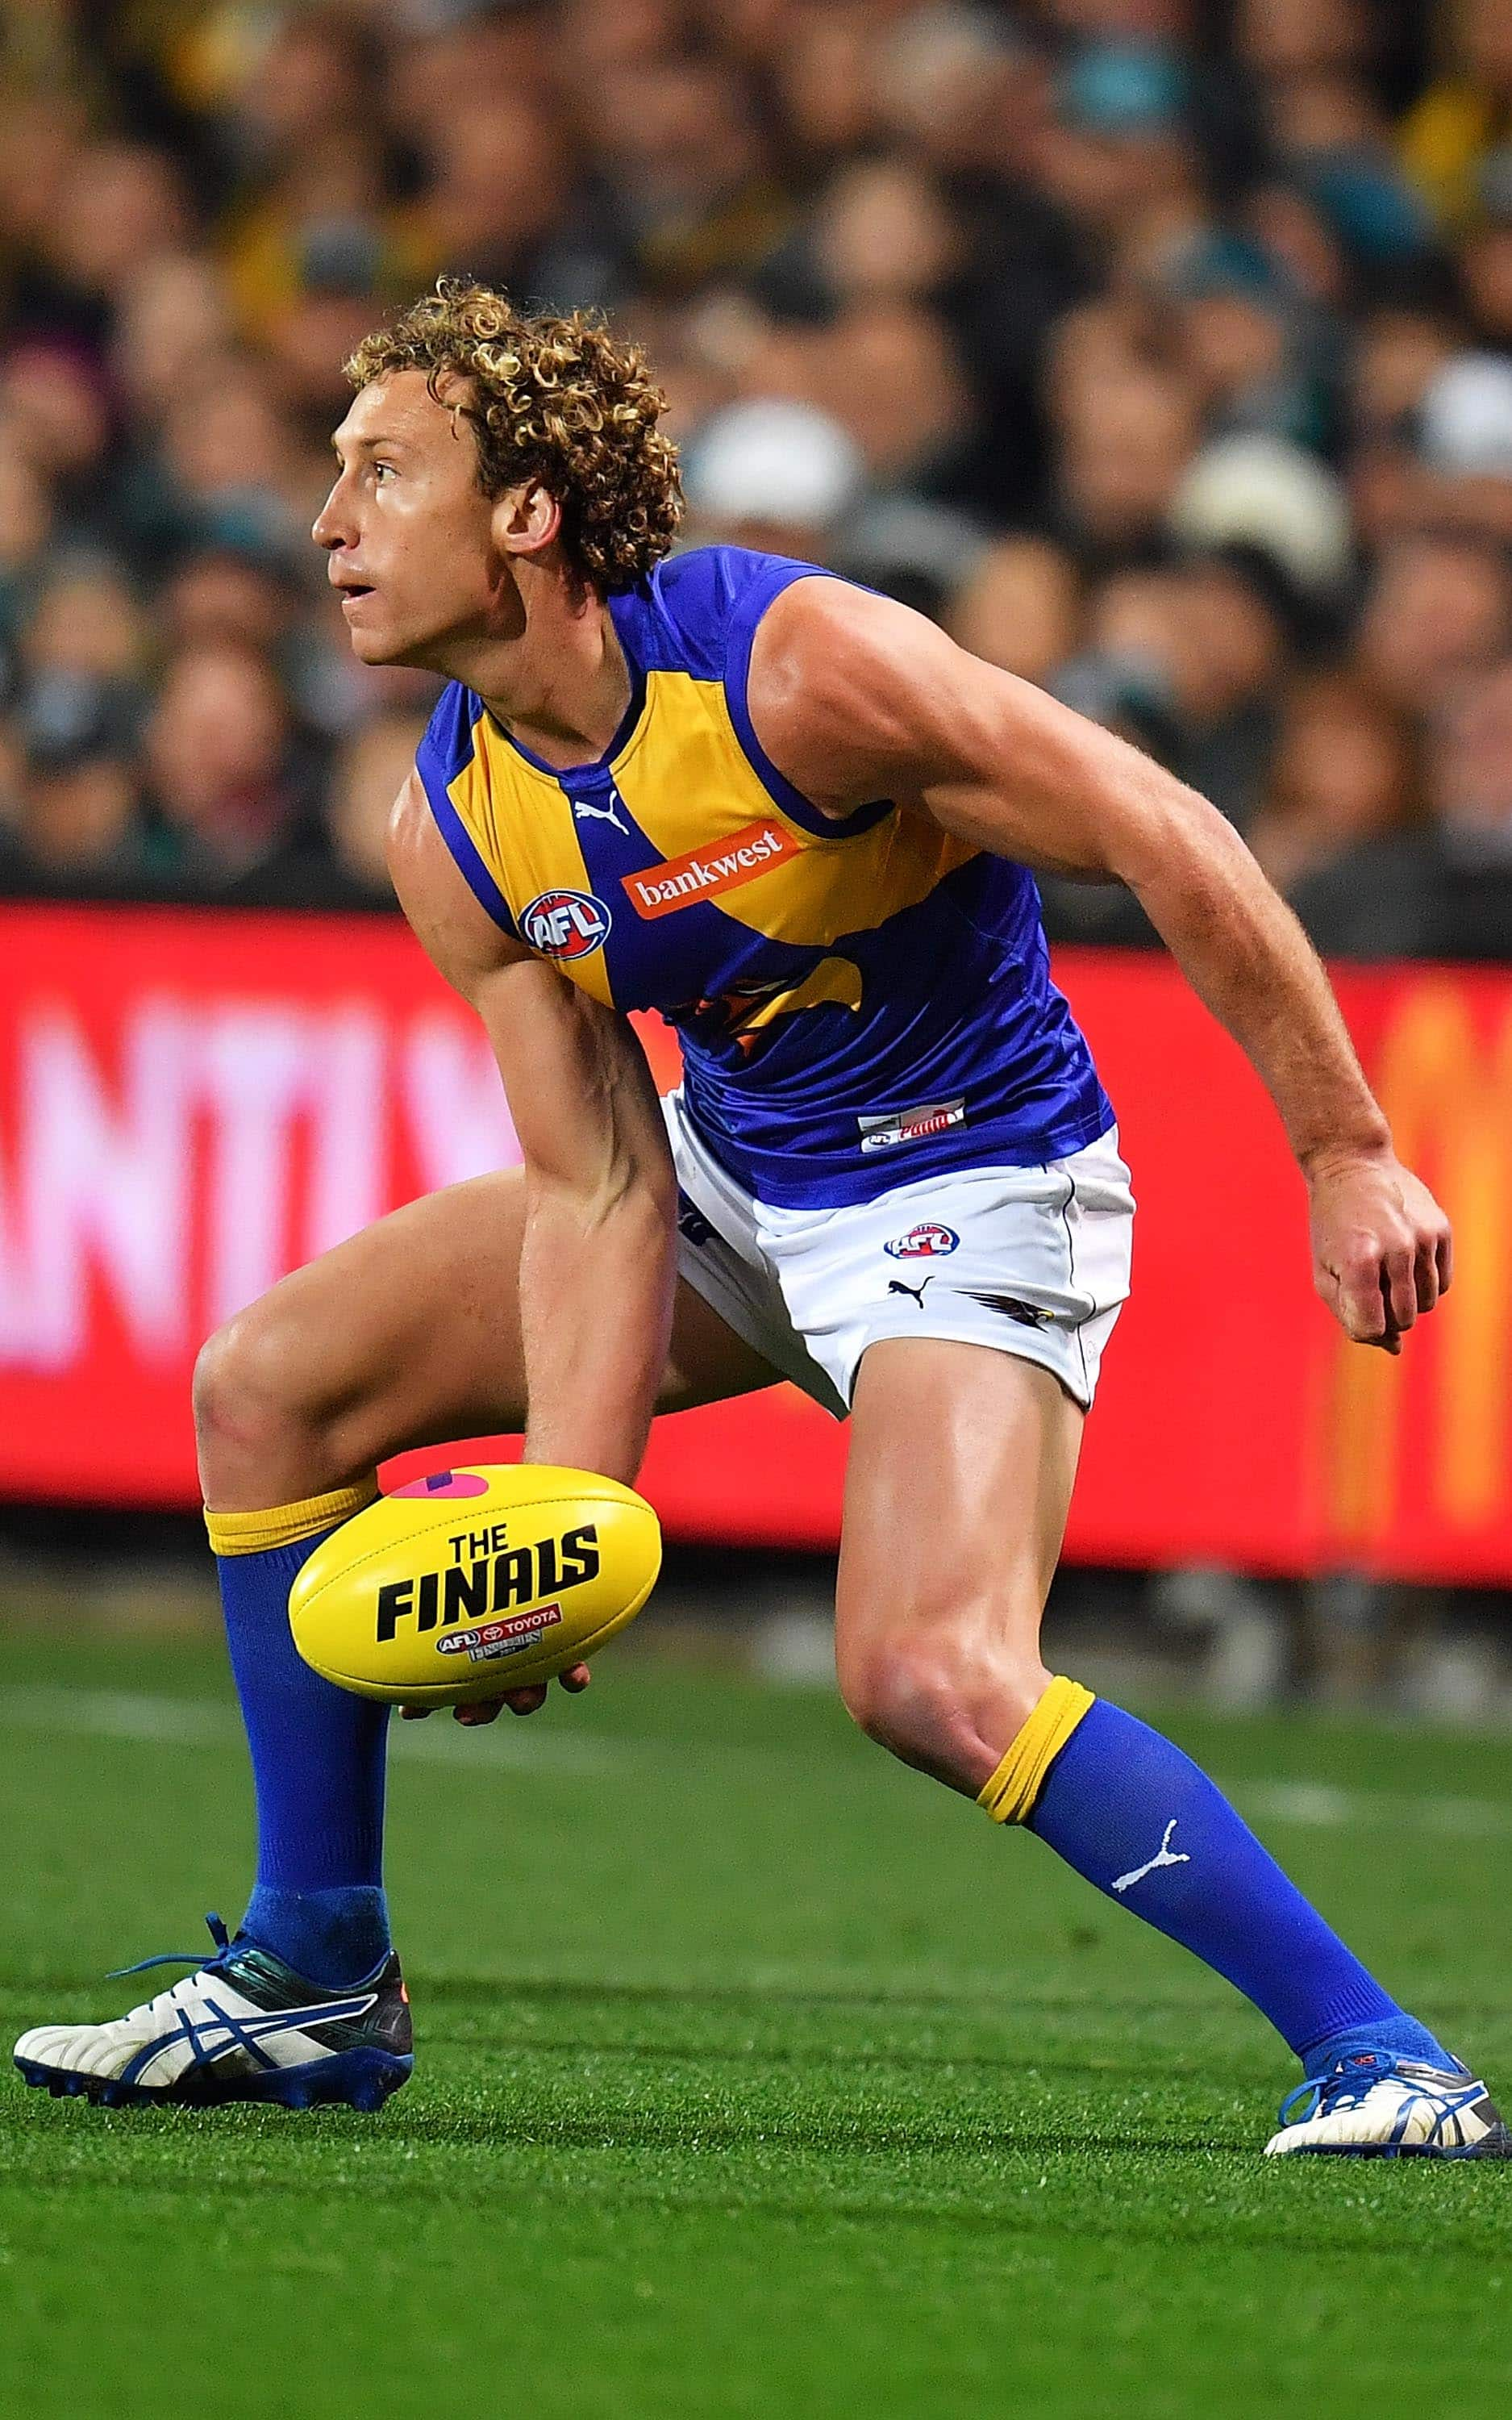 Matt Priddis amassed 33 disposals, 17 contested possessions, 10 tackles and a timely goal against the Power